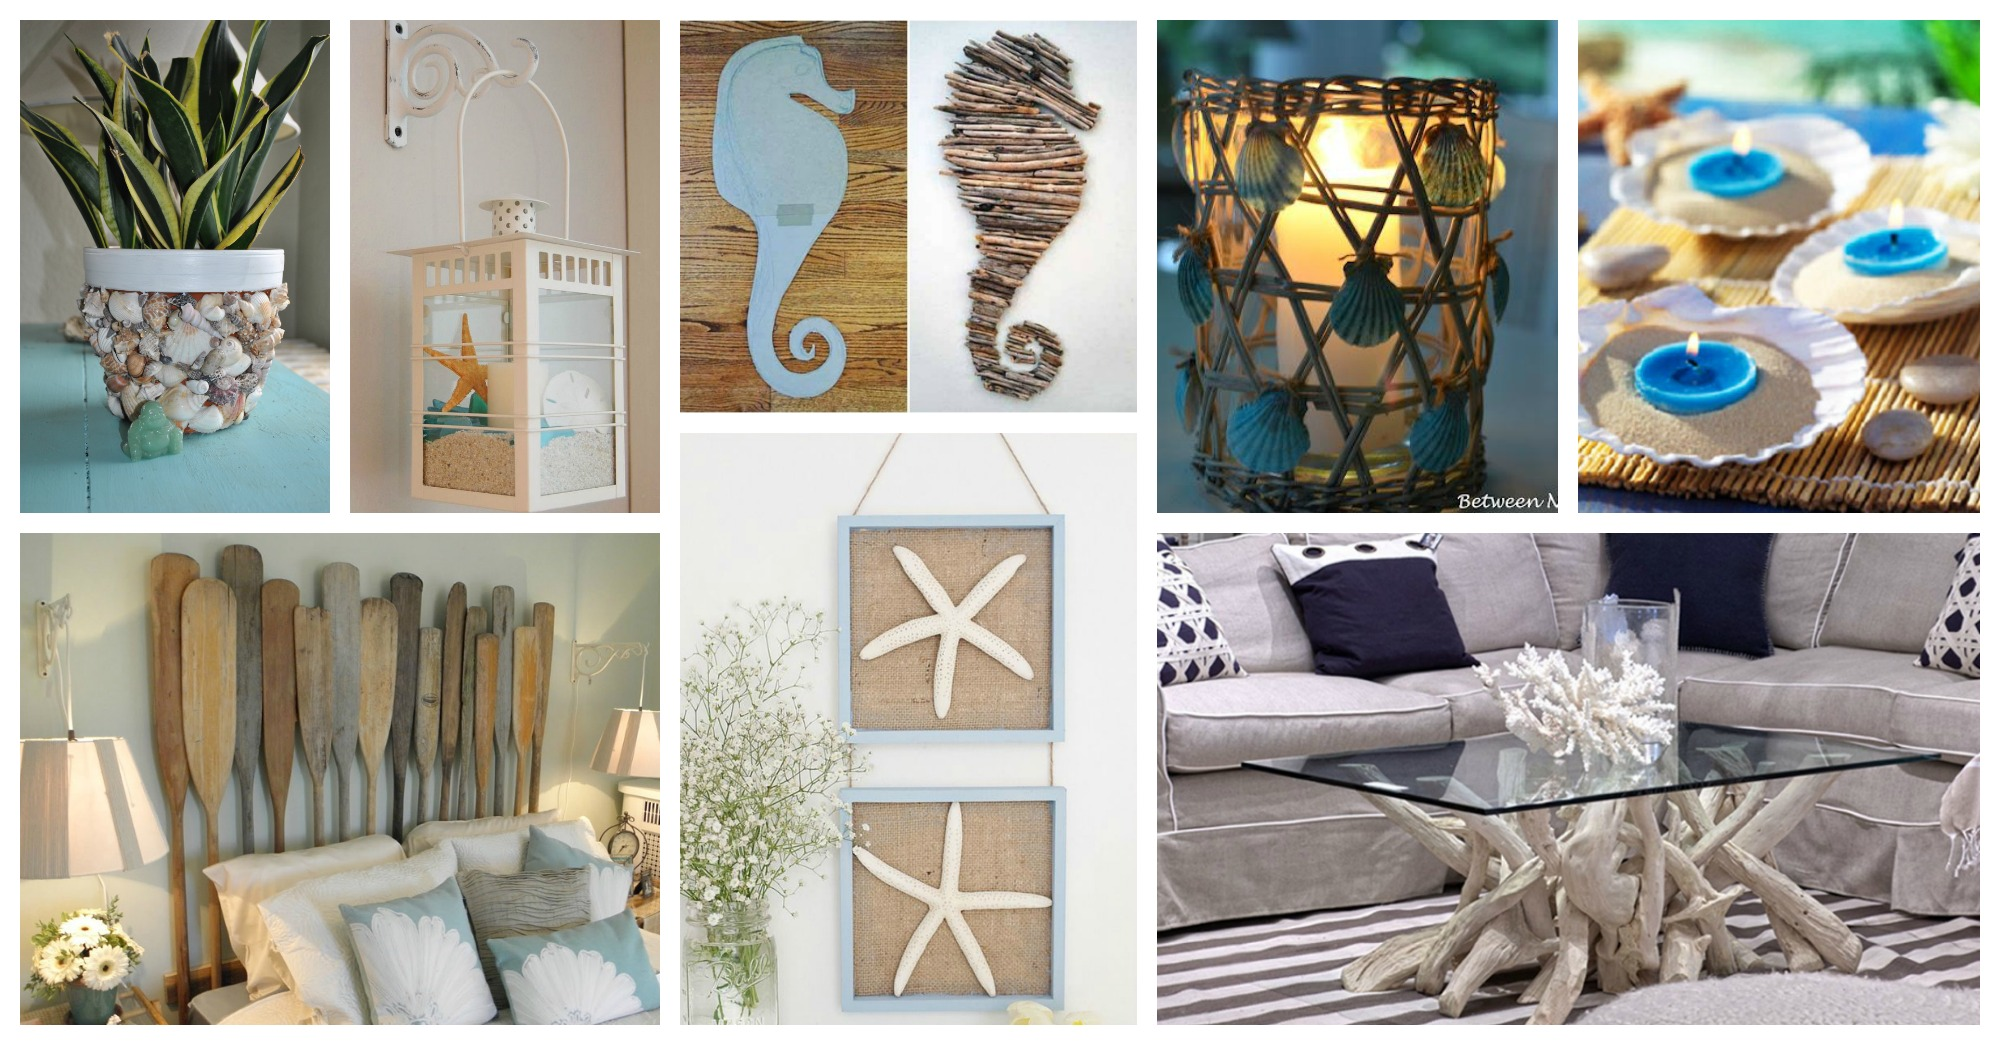 Terrific Diy Beach House Decorations That Will Make You Want Go To The Beach